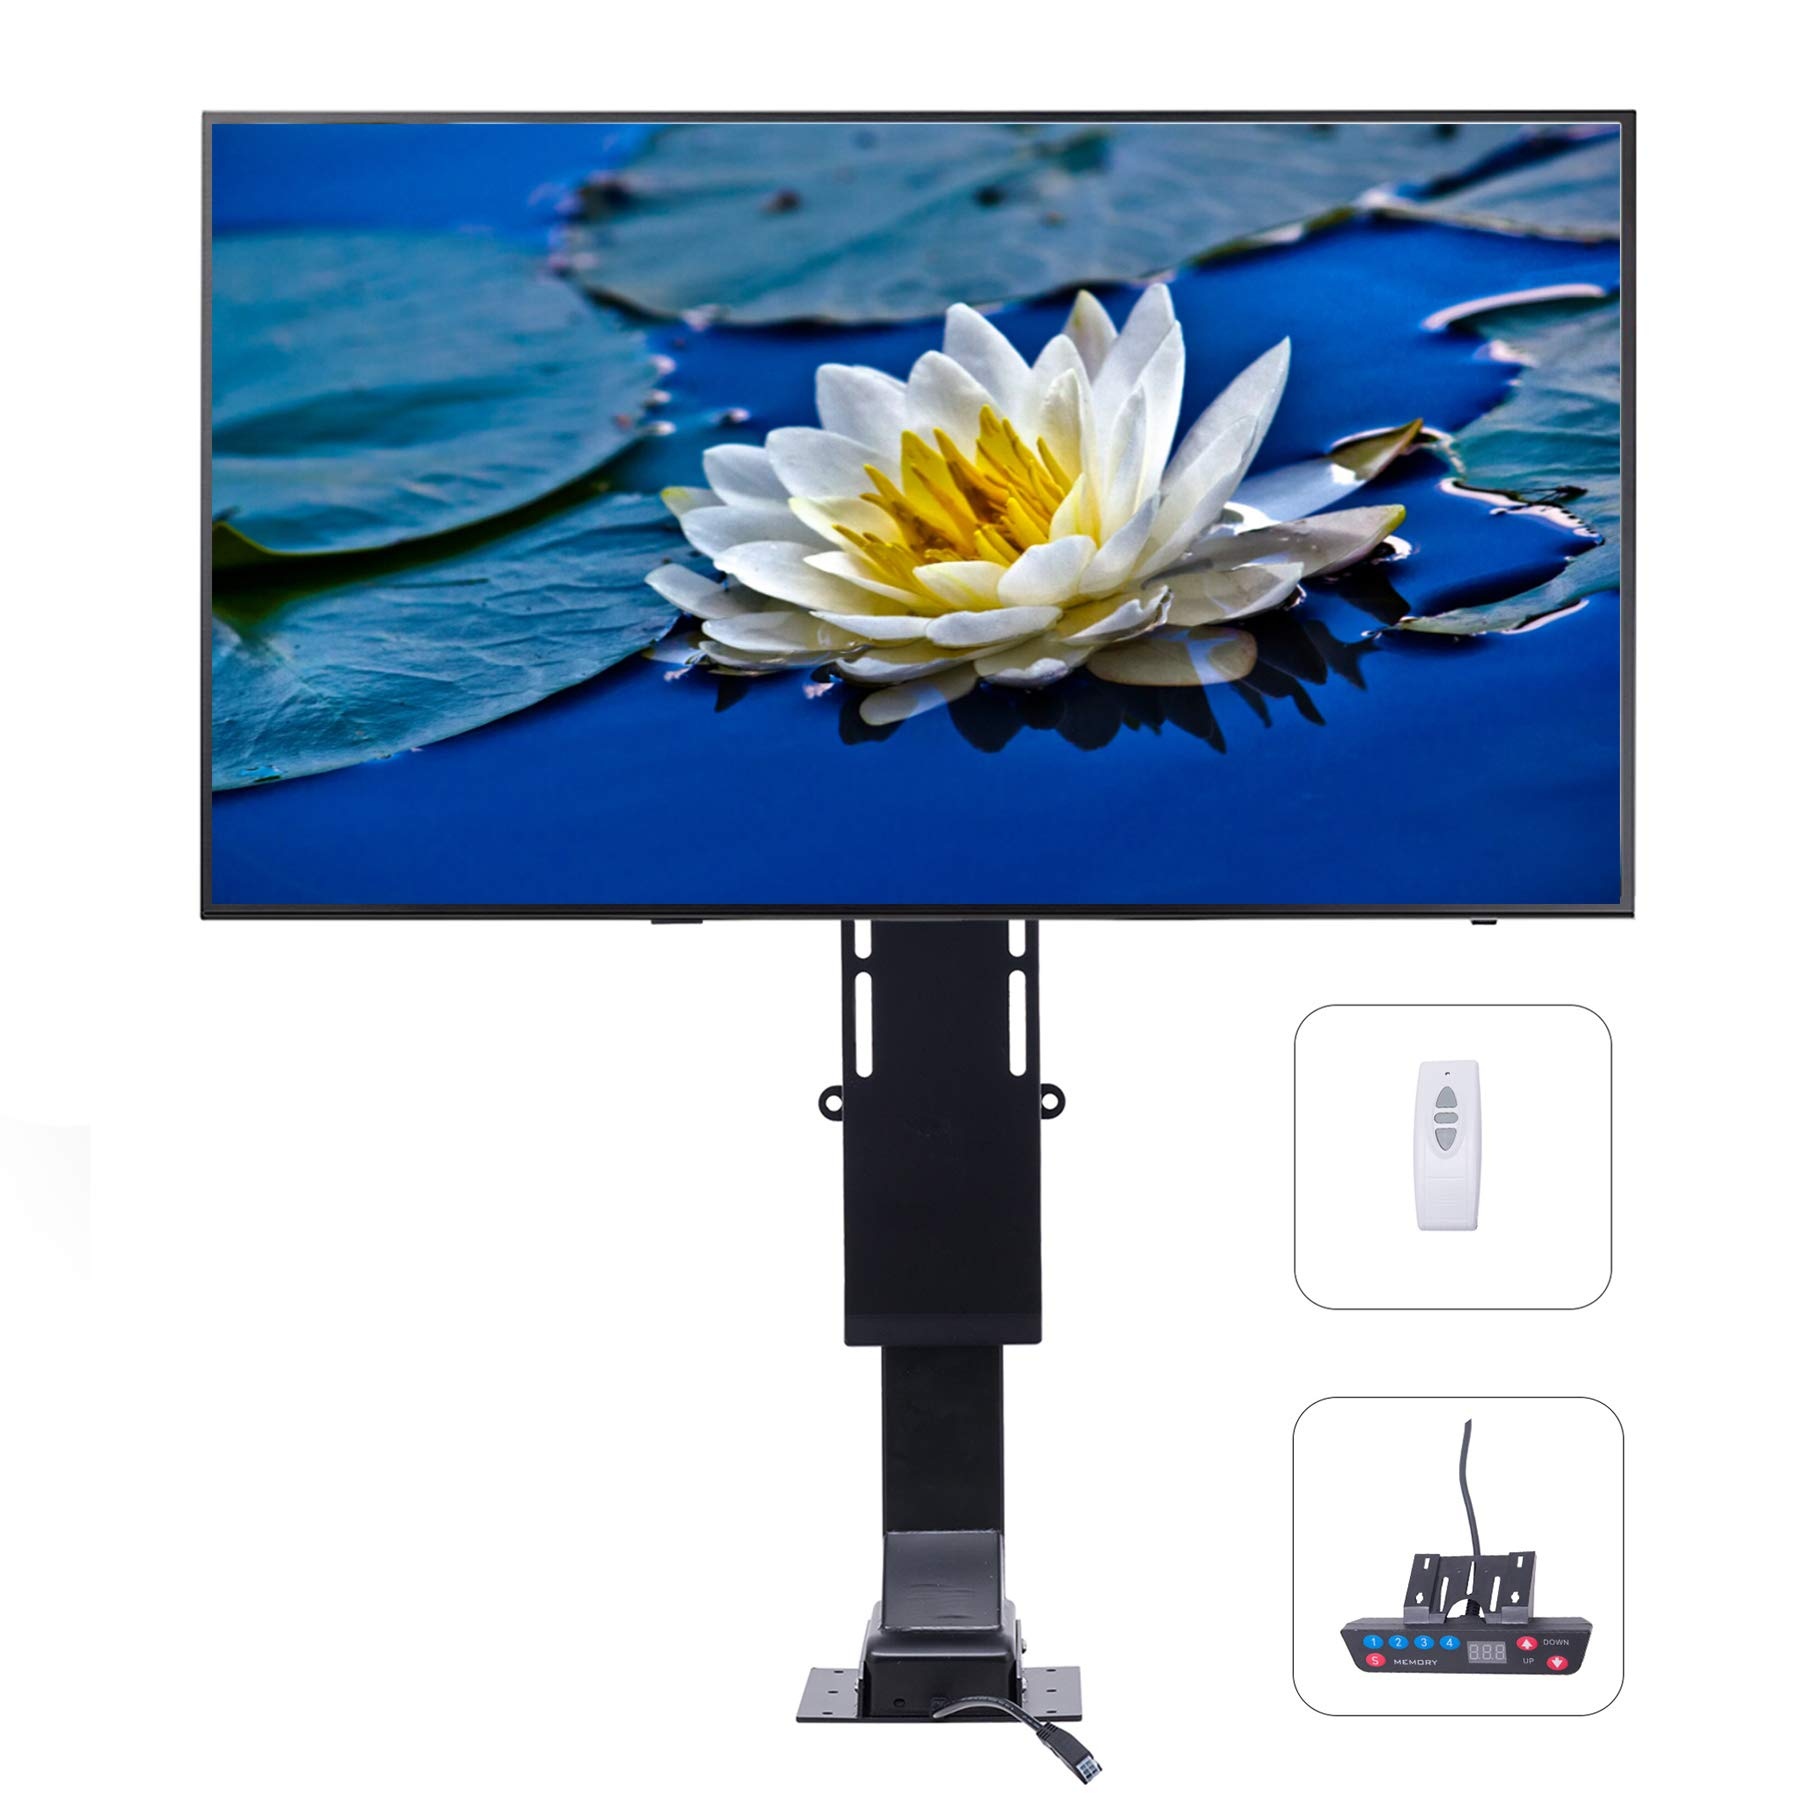 """CO-Z Motorized TV Mount Lift with Remote Control for Large Screen 32"""" ~ 72"""", Height Adjustable up to 72'', Weight Capacity 154 lb. Fast Lift Speed 1'' per Second"""